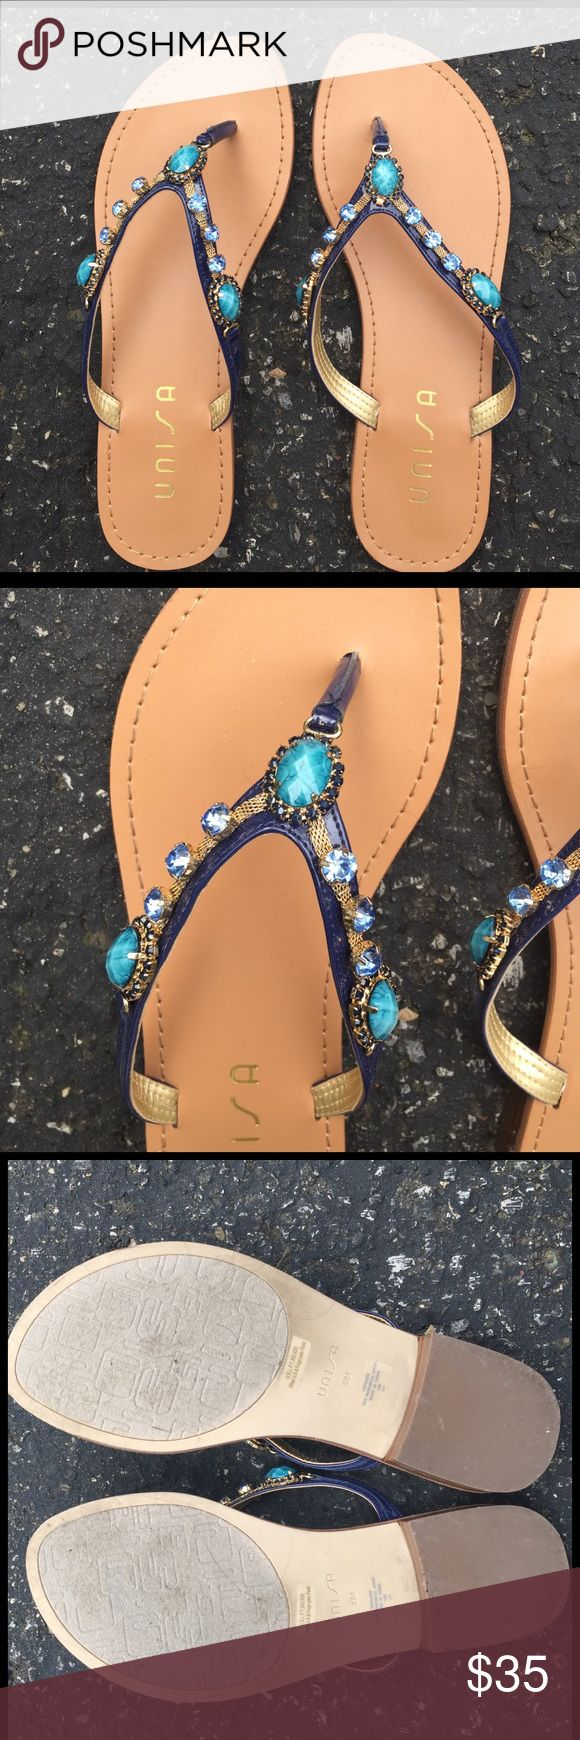 Unisa Size 10 Jeweled Sandals A beautiful pair of jeweled sandals. Size ten, worn twice! Unisa Shoes Sandals